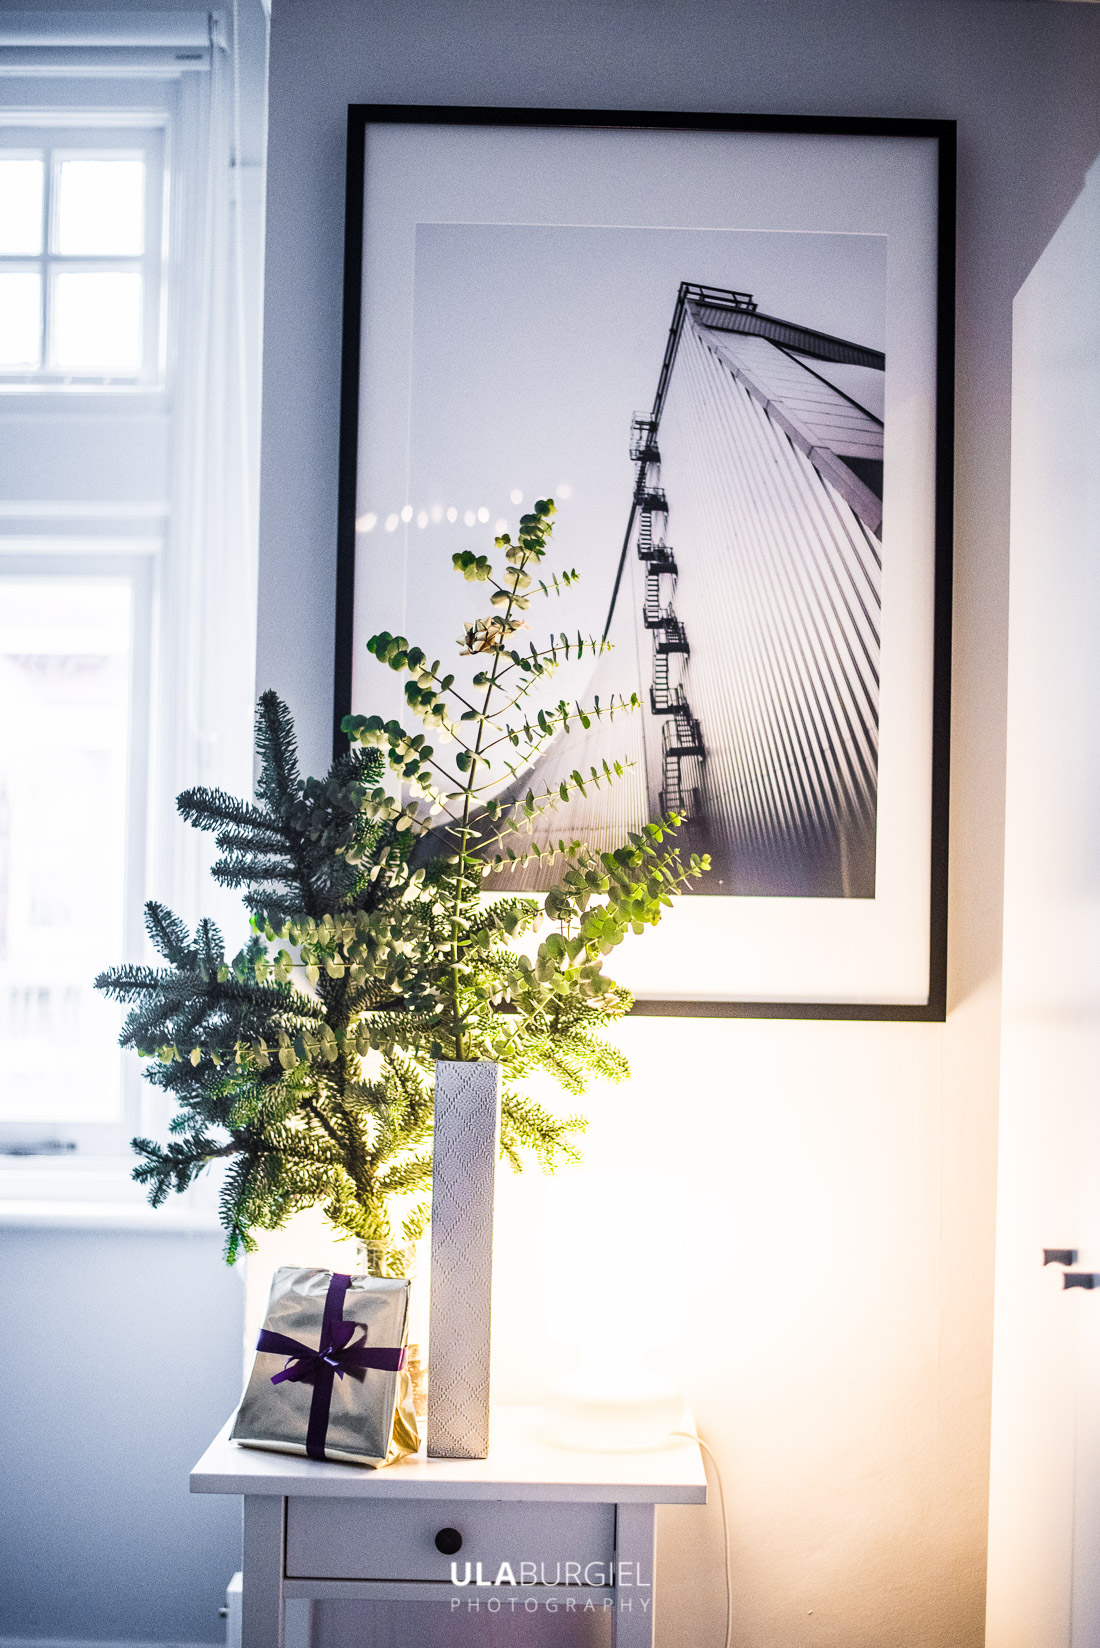 Ula Burgiel Interior Designer Photographer living in London - Christmas decorations without plastic tips